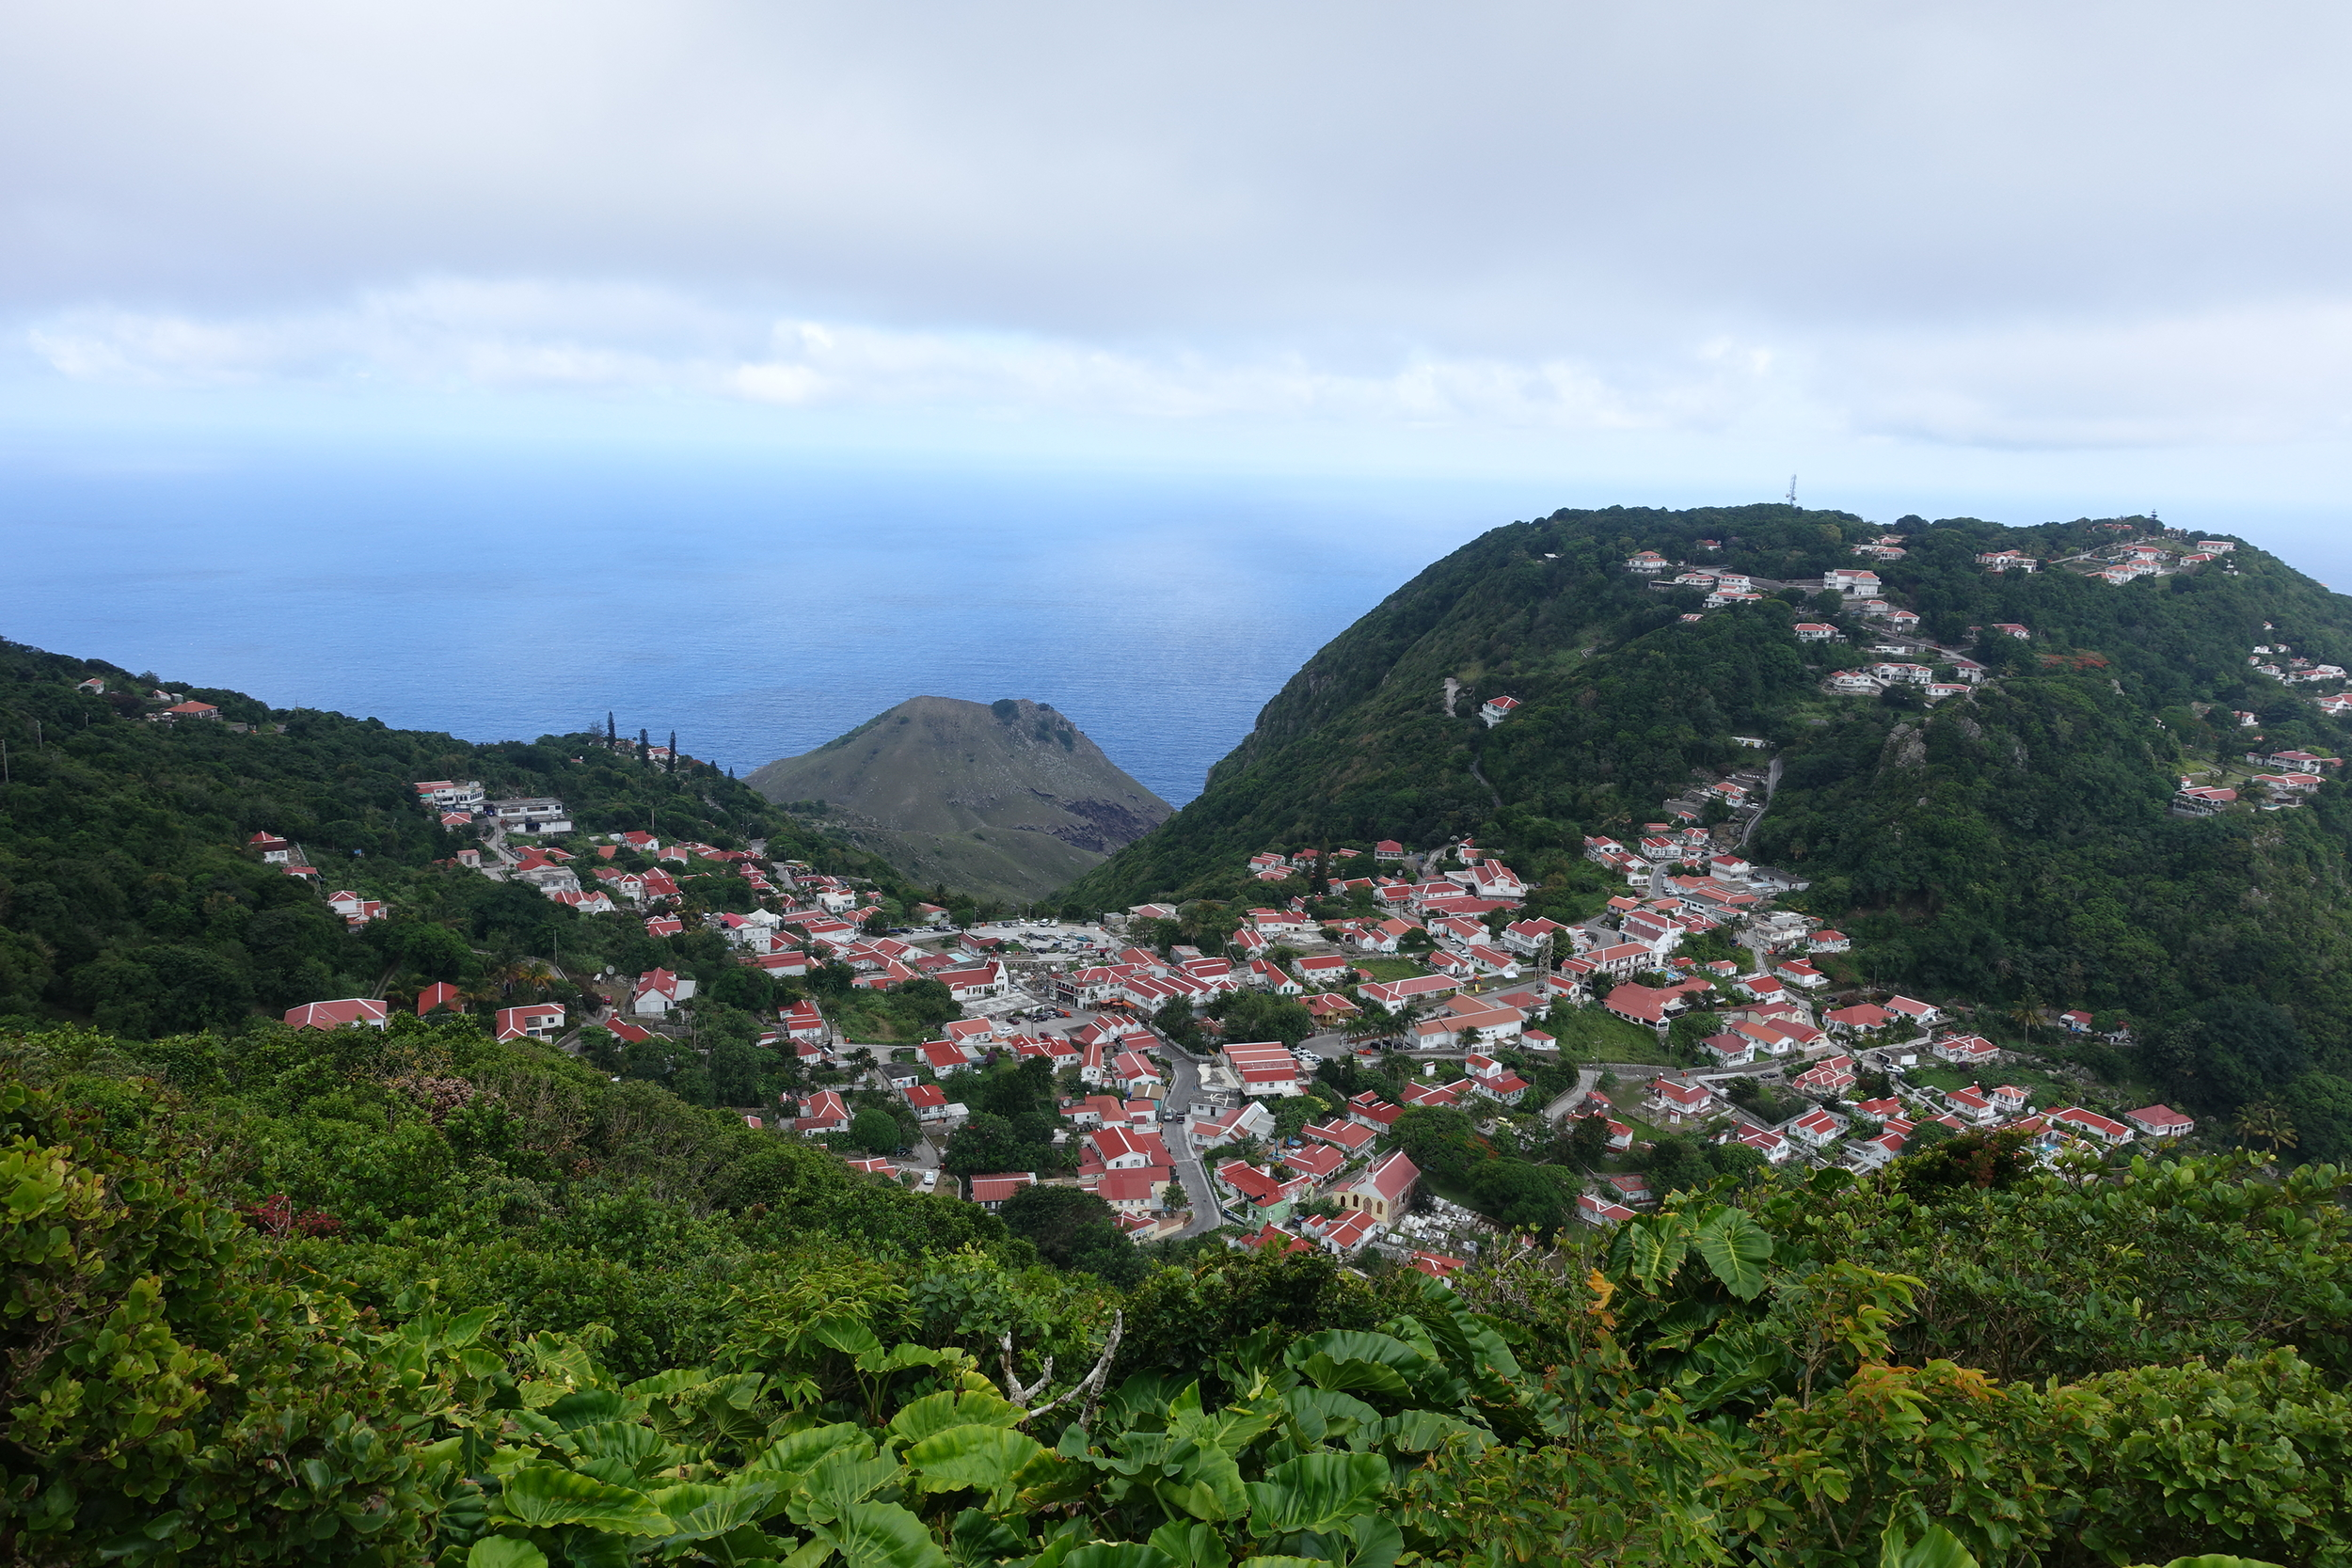 windwardside from the mount scenery track - maskehorne hill